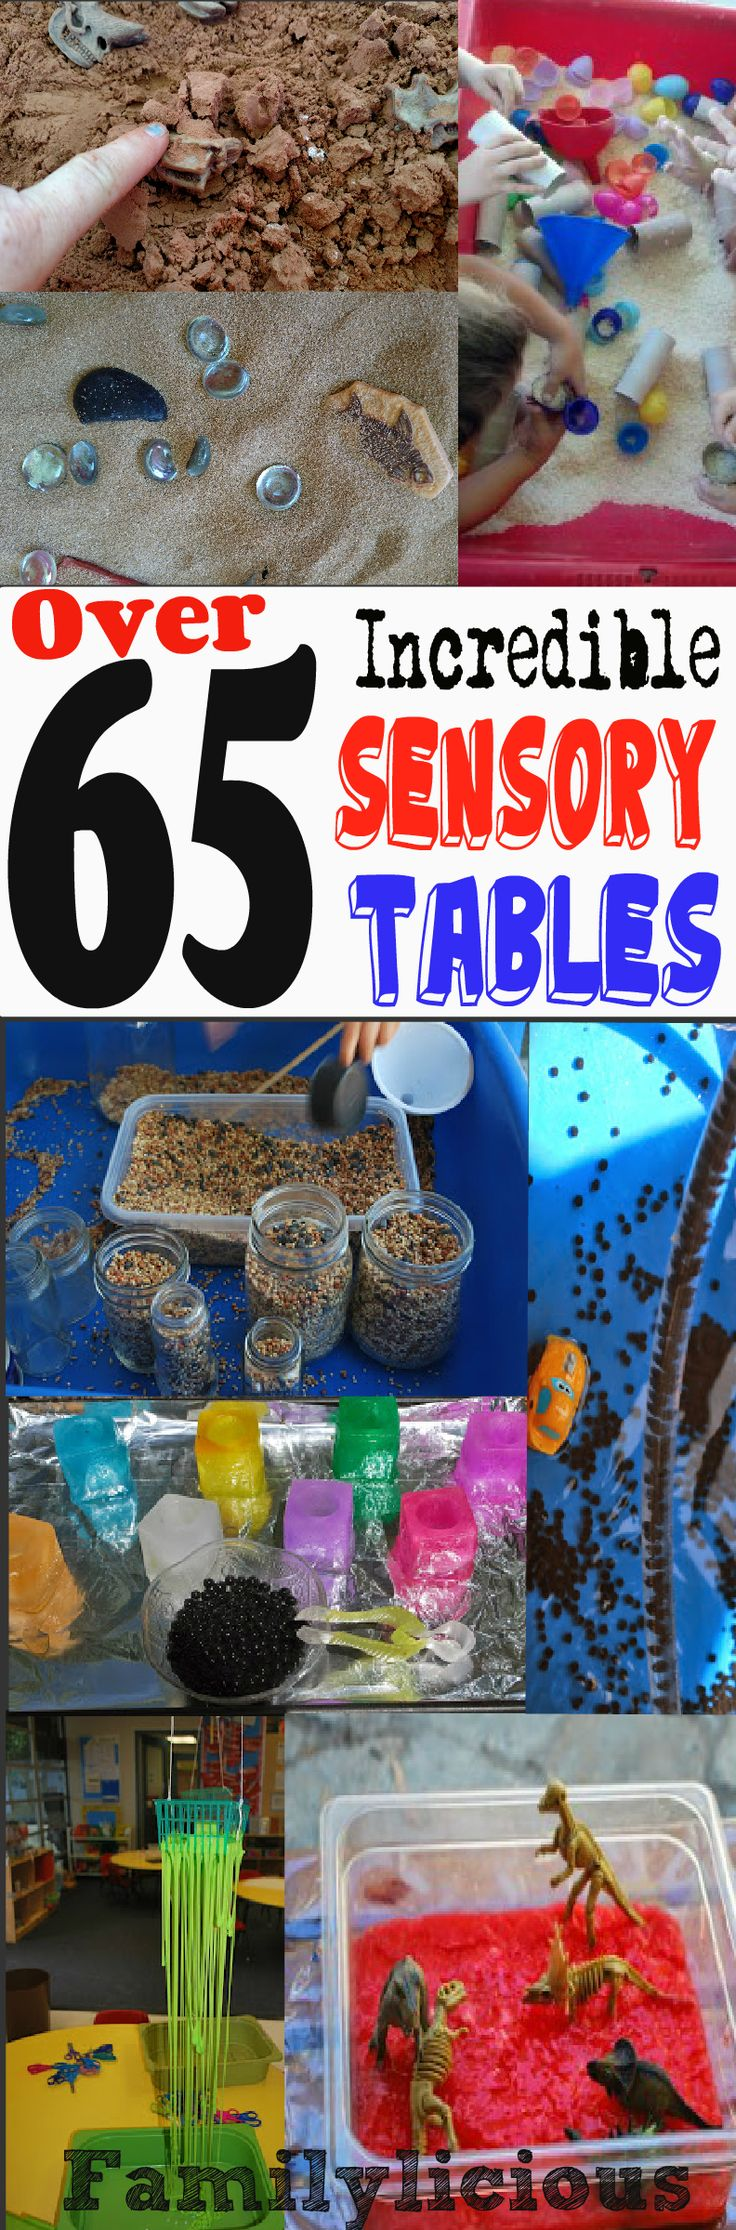 Over 65 Incredible Sensory Tables with oodles of recipes and amazing STEM activities